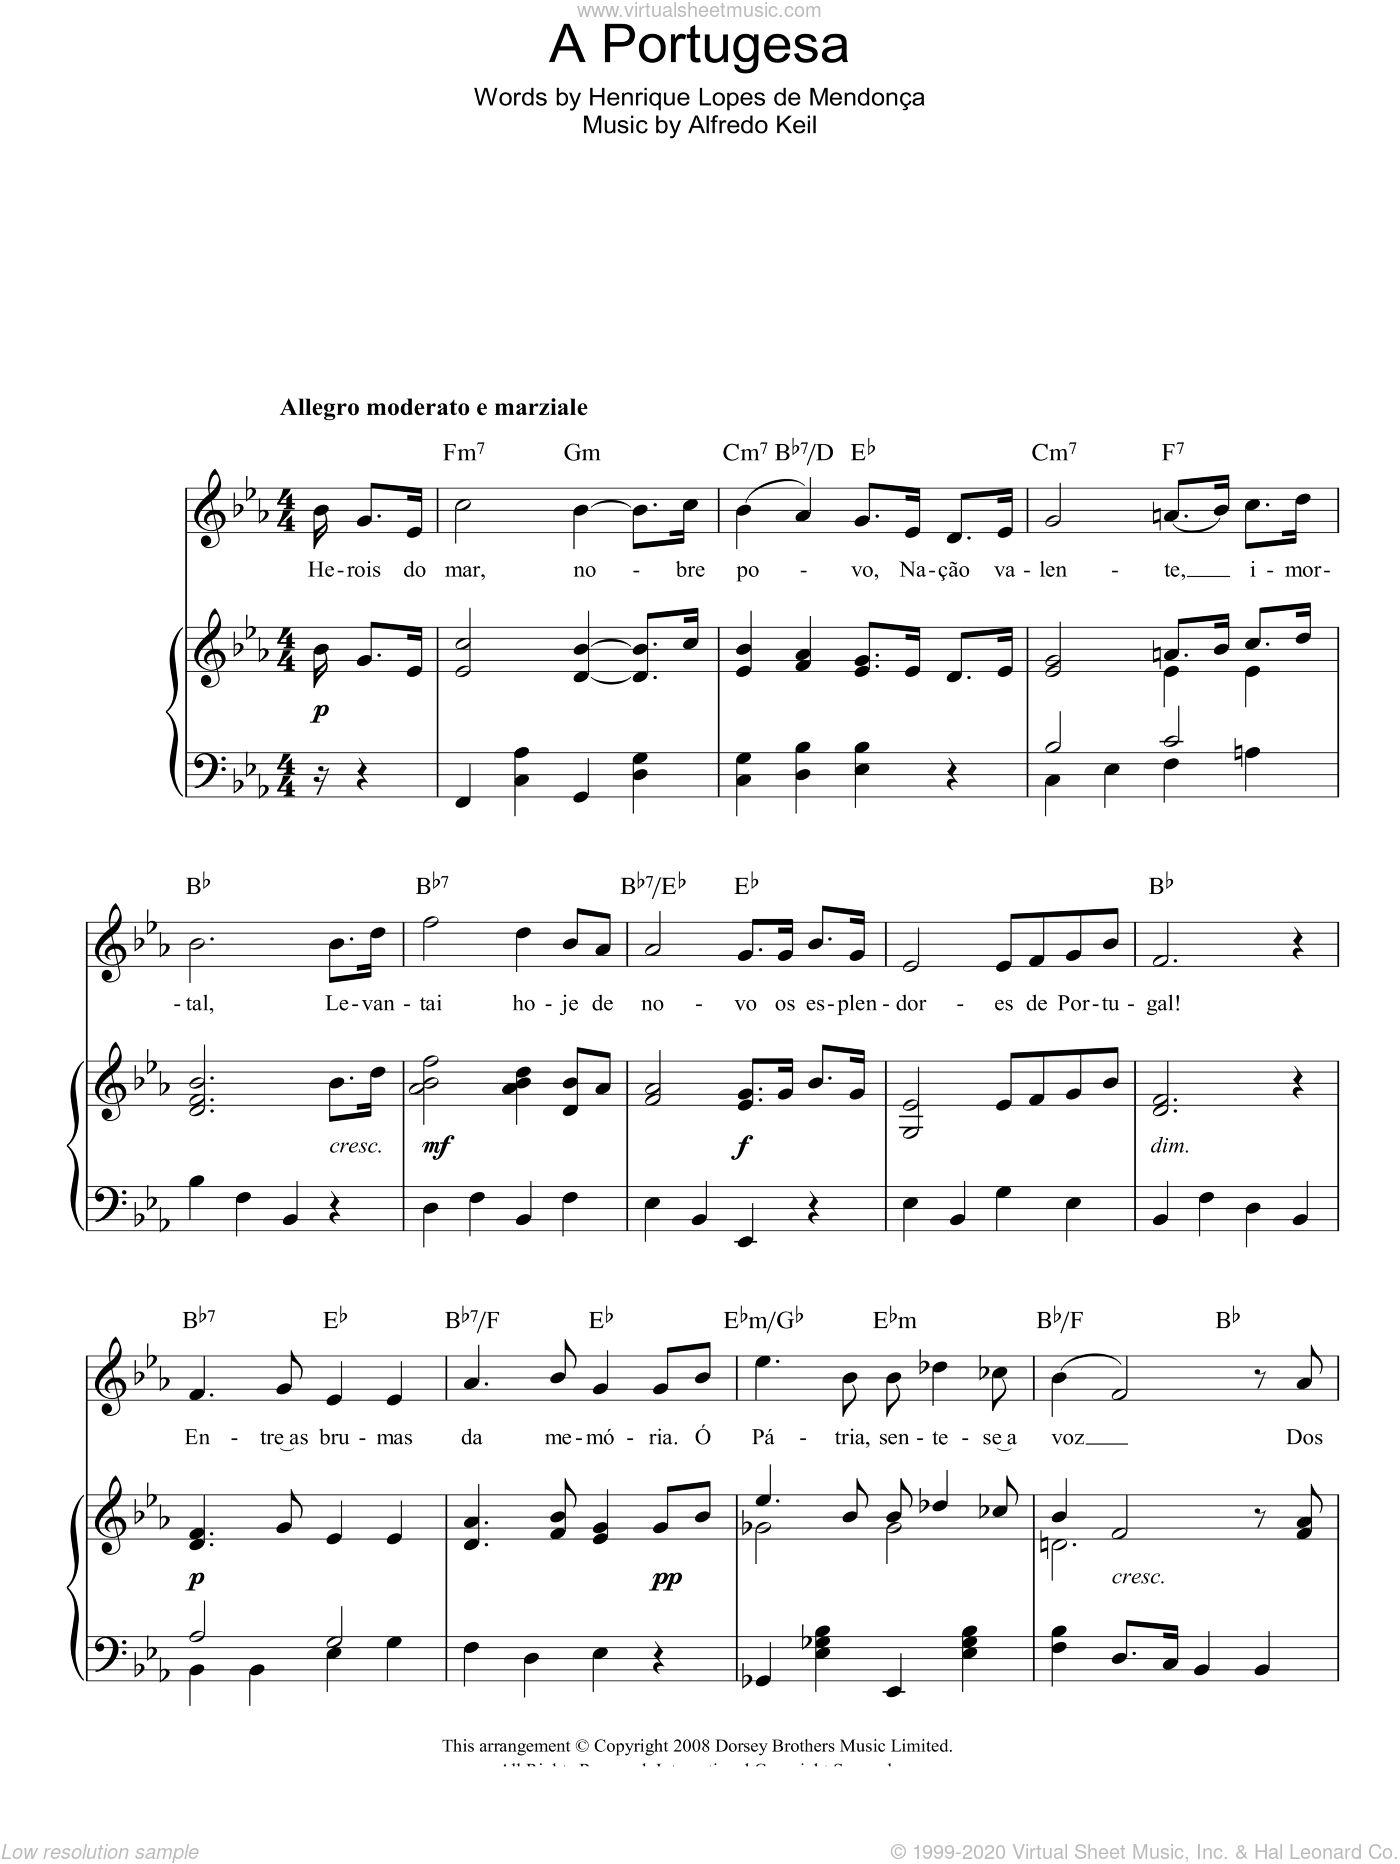 A Portugesa (Portuguese National Anthem) sheet music for voice, piano or guitar by Henrique Lopes de Mendonca